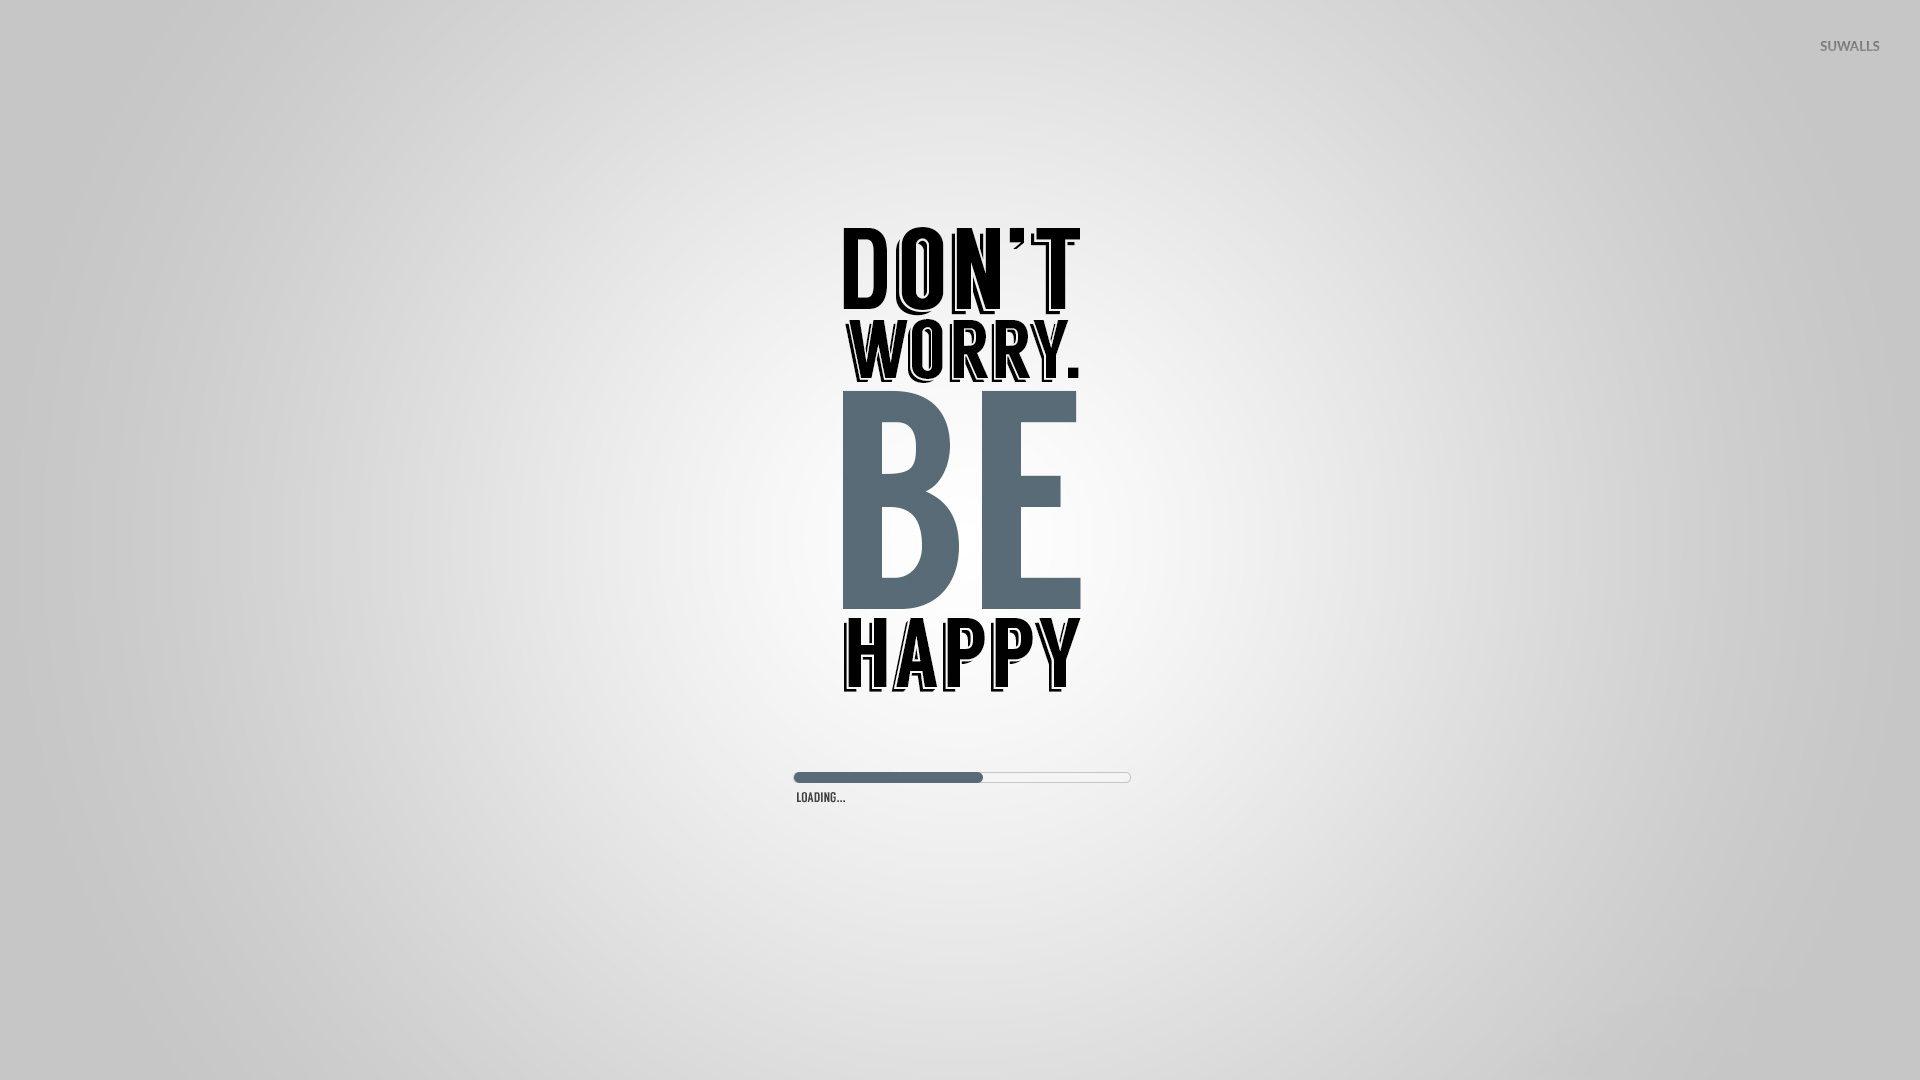 dont worry be happy quotes - photo #6